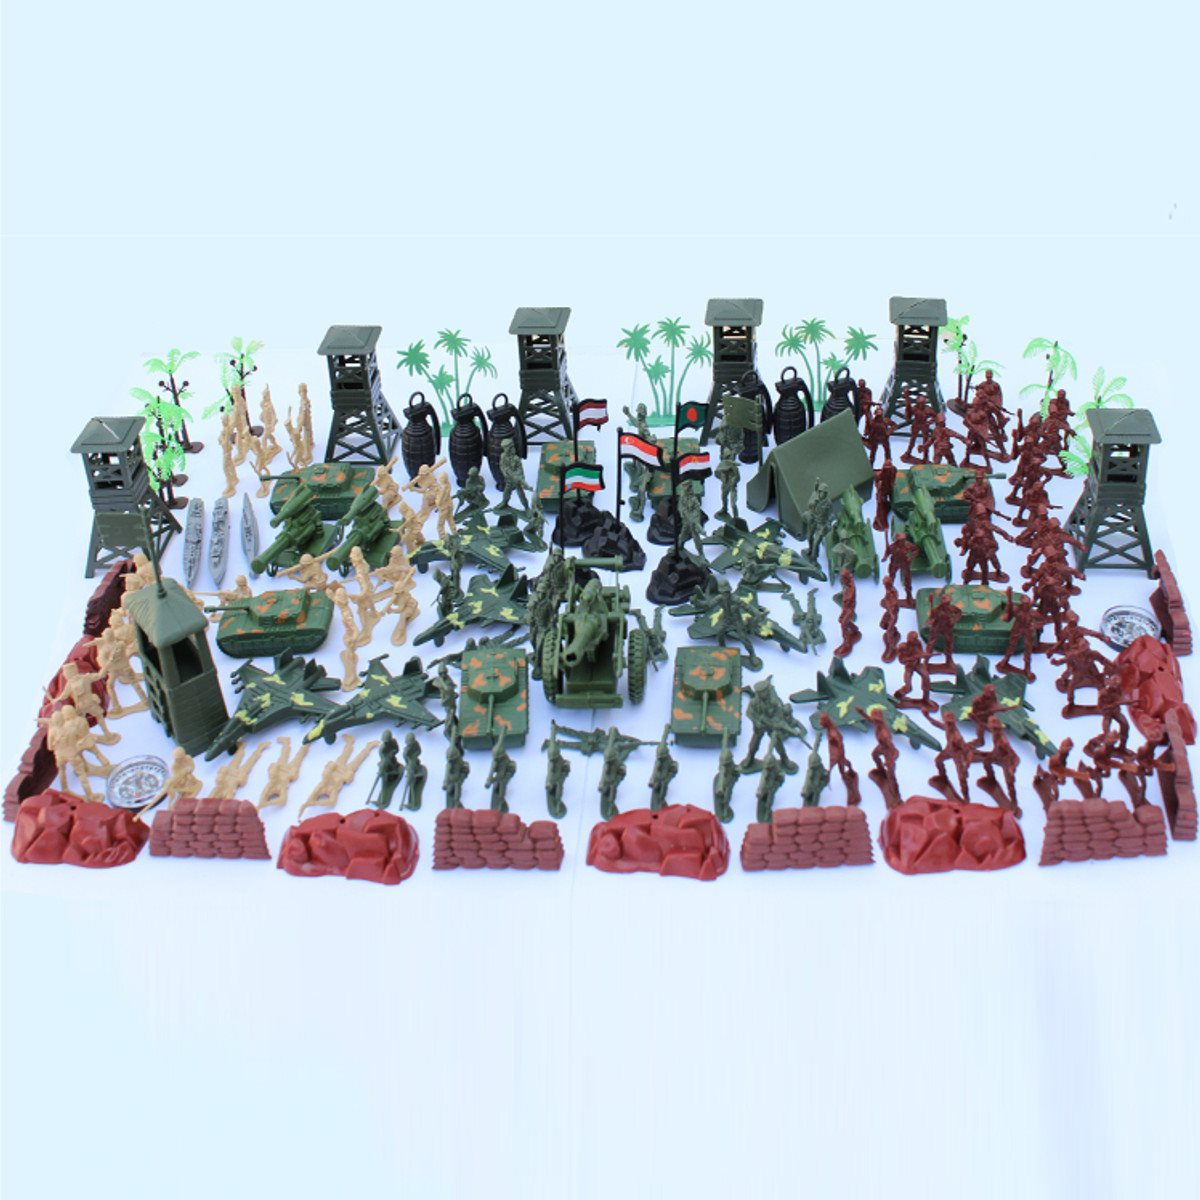 170pcs/set PVC Military Plastic Model Toy Soldier Funko Pop Action Figure Army Men Figures & Accessories Playset Kit Saint Seiya